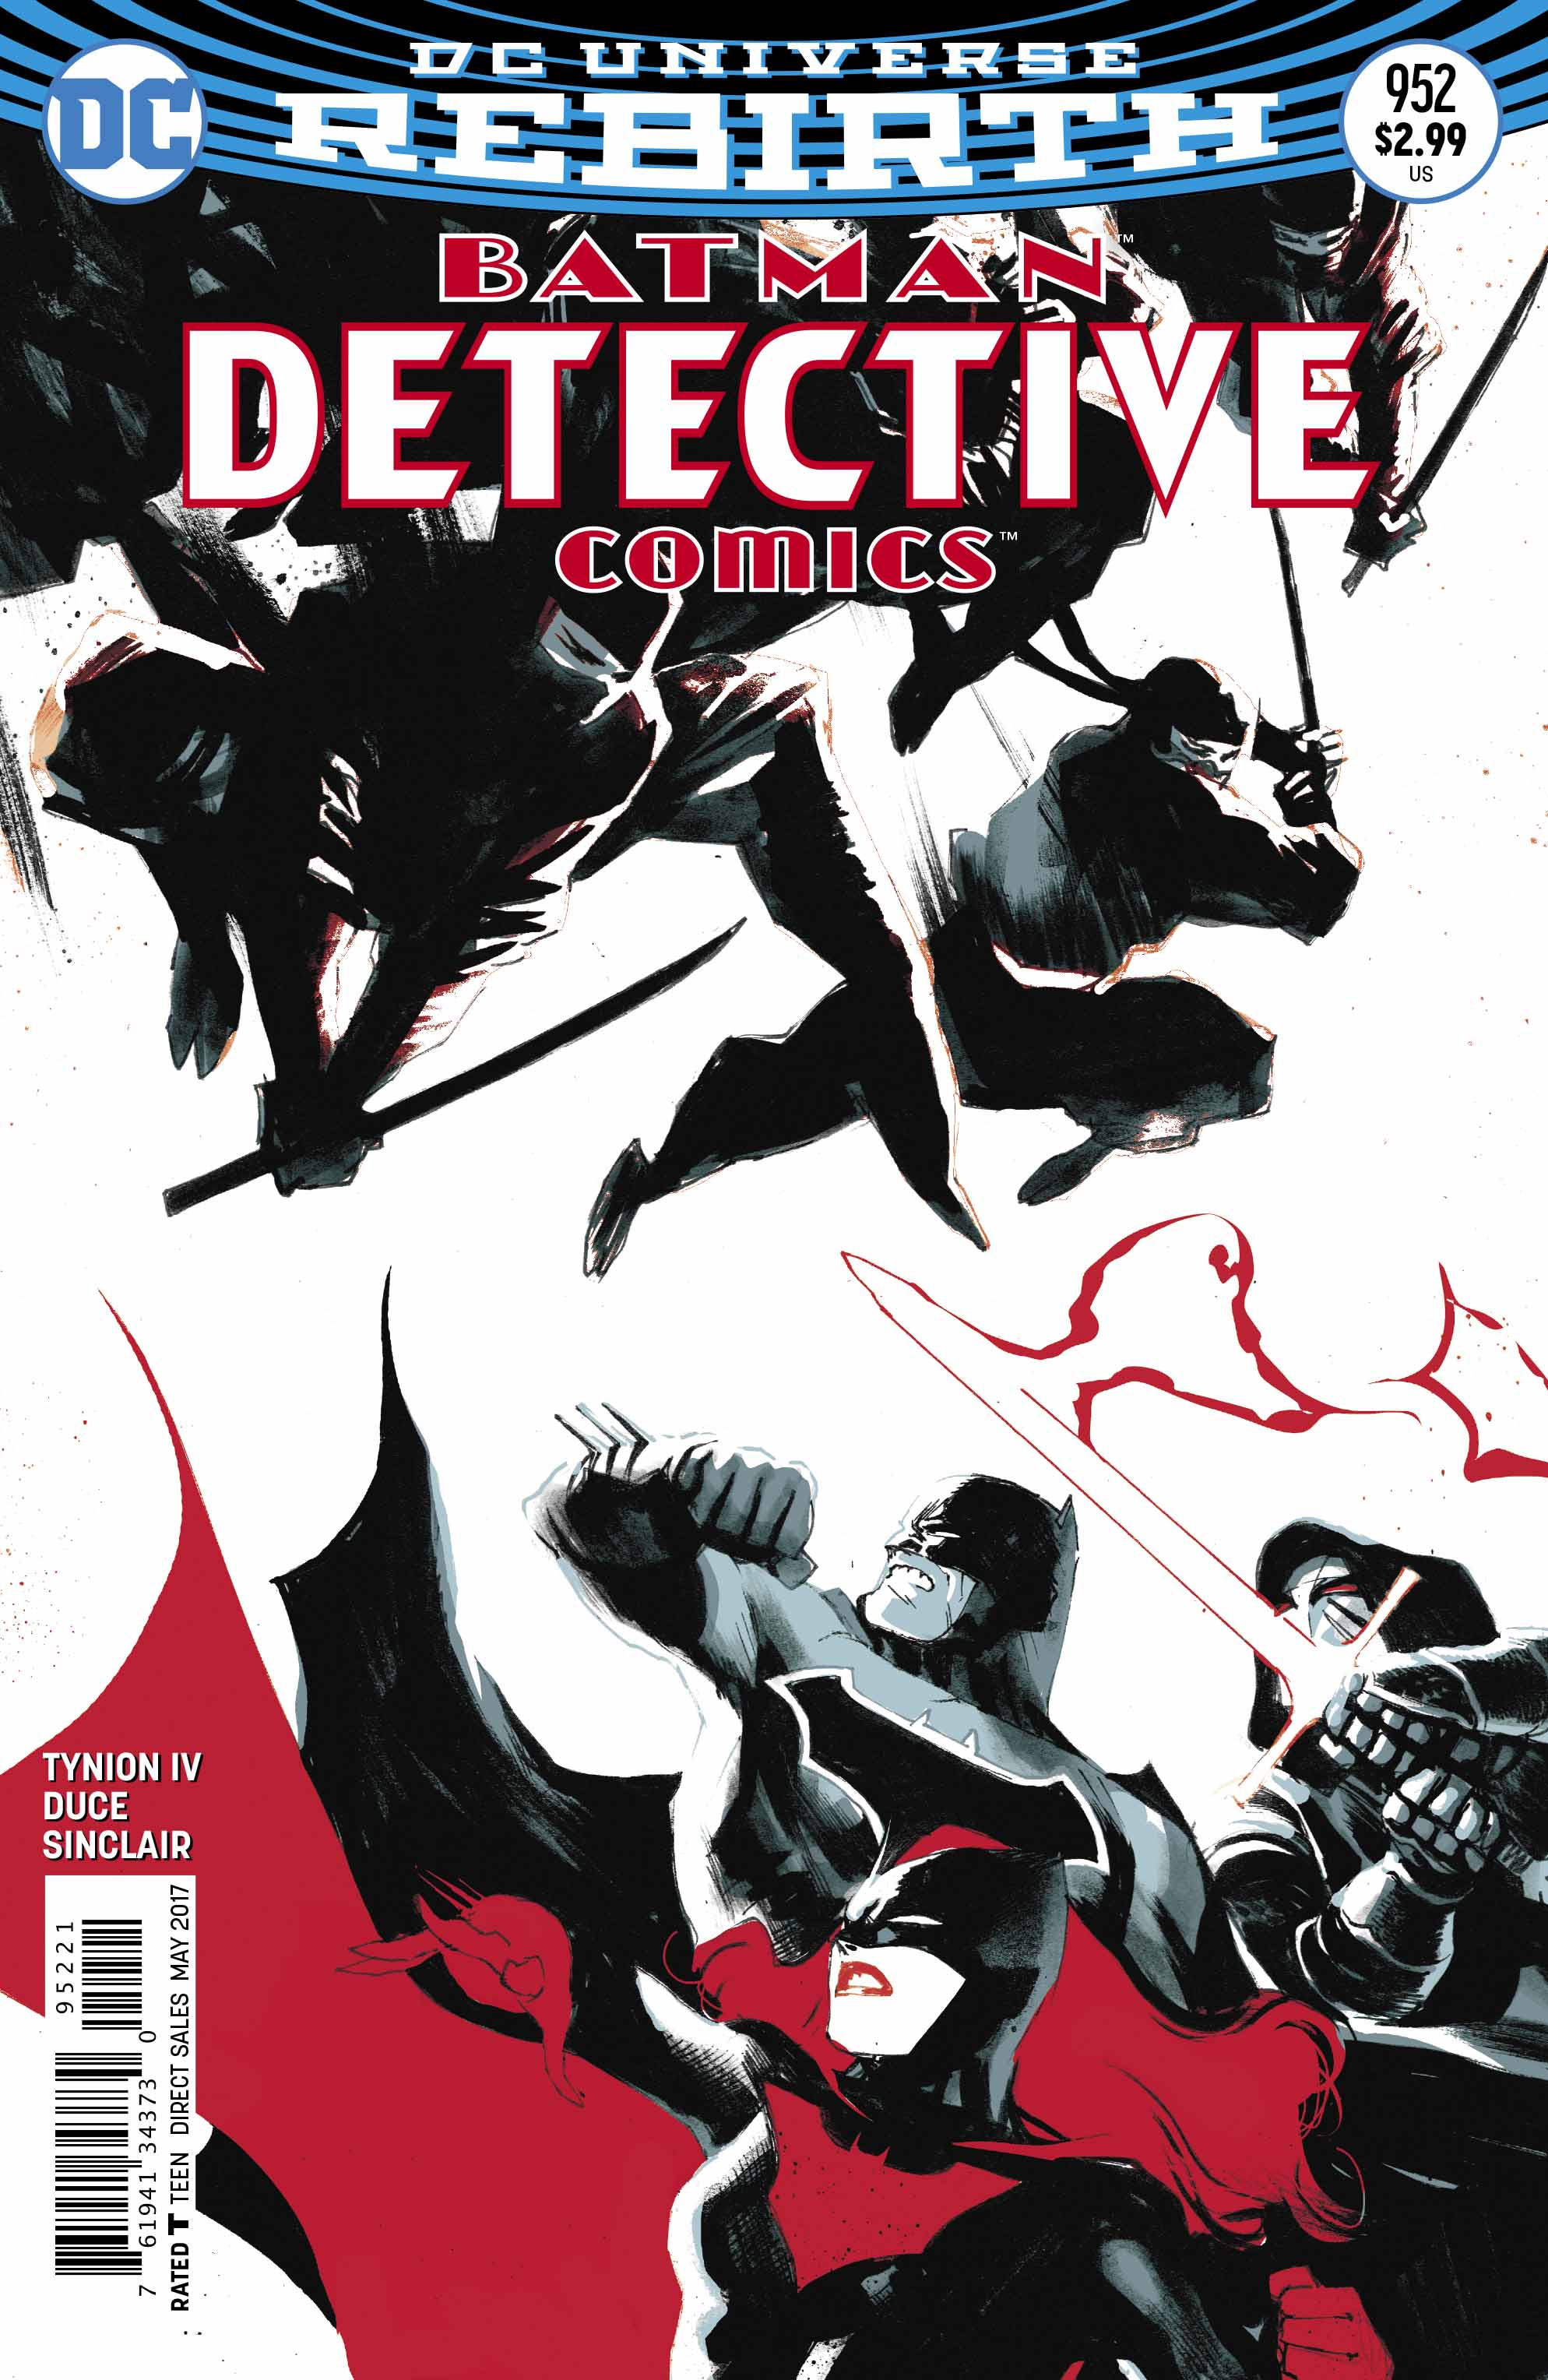 Detective Comics #952 Review